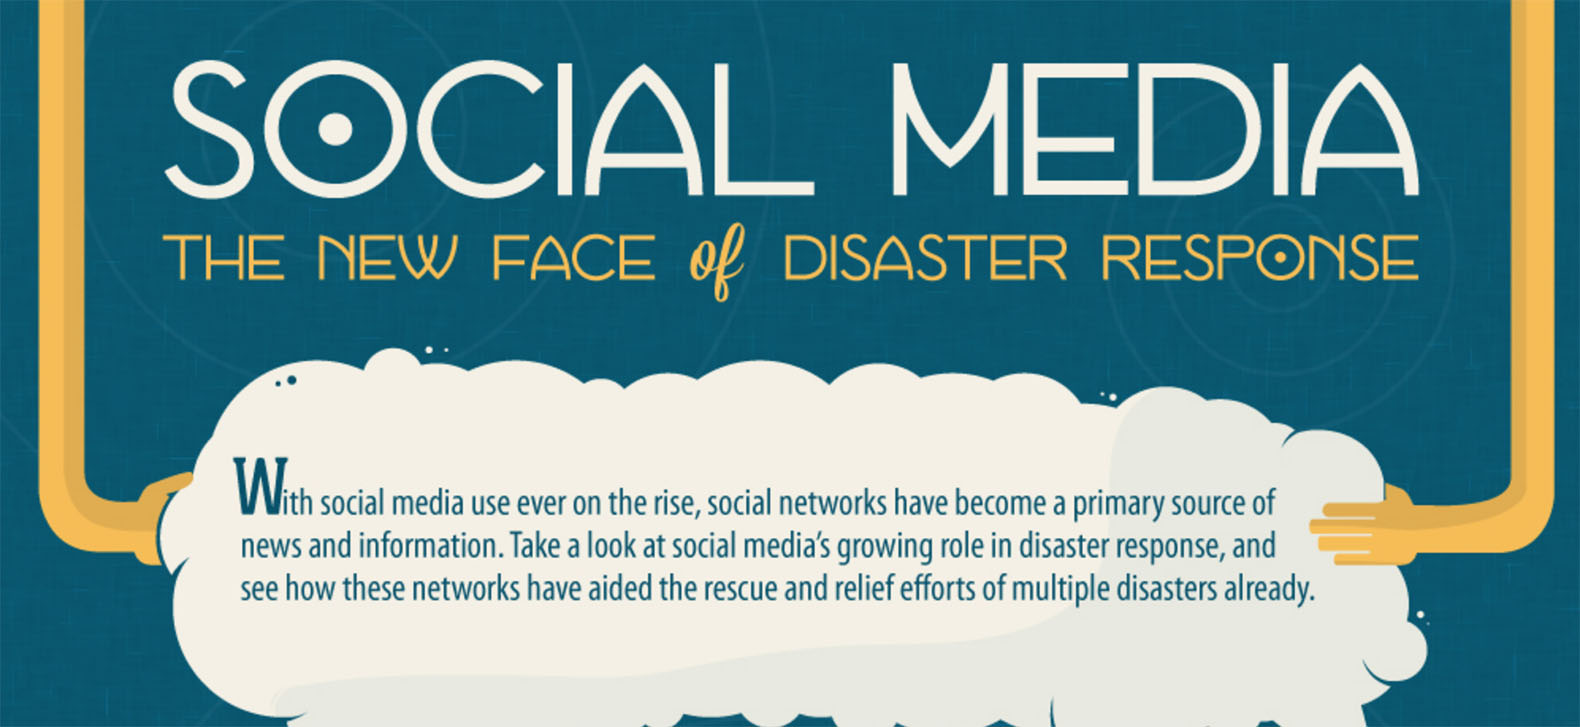 social media case studies in disaster response